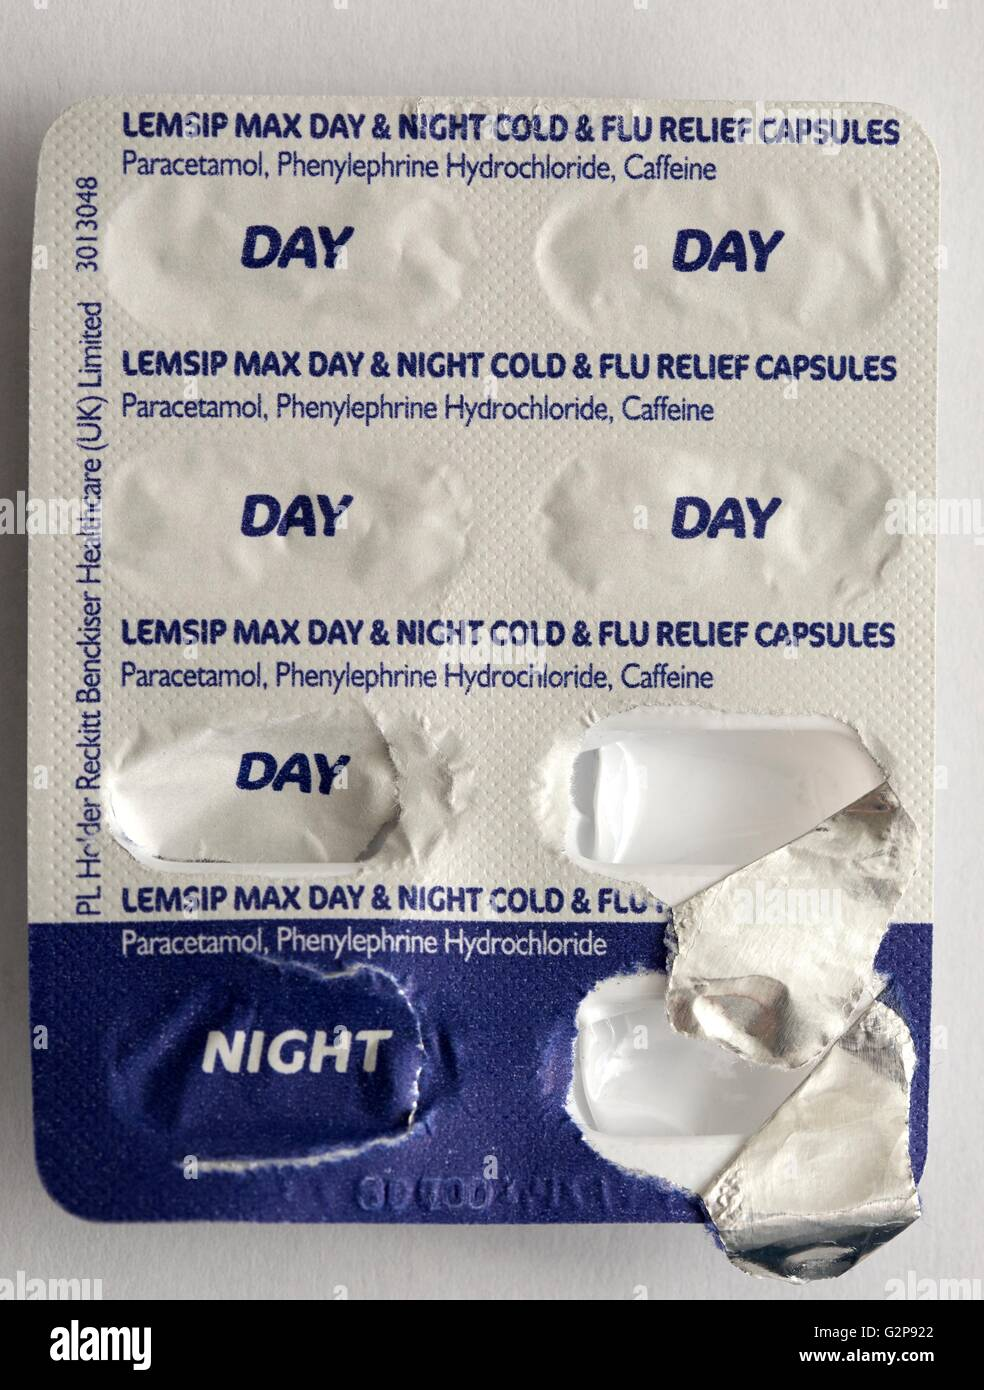 Lemsip max day and night cold flu relief capsules - Stock Image